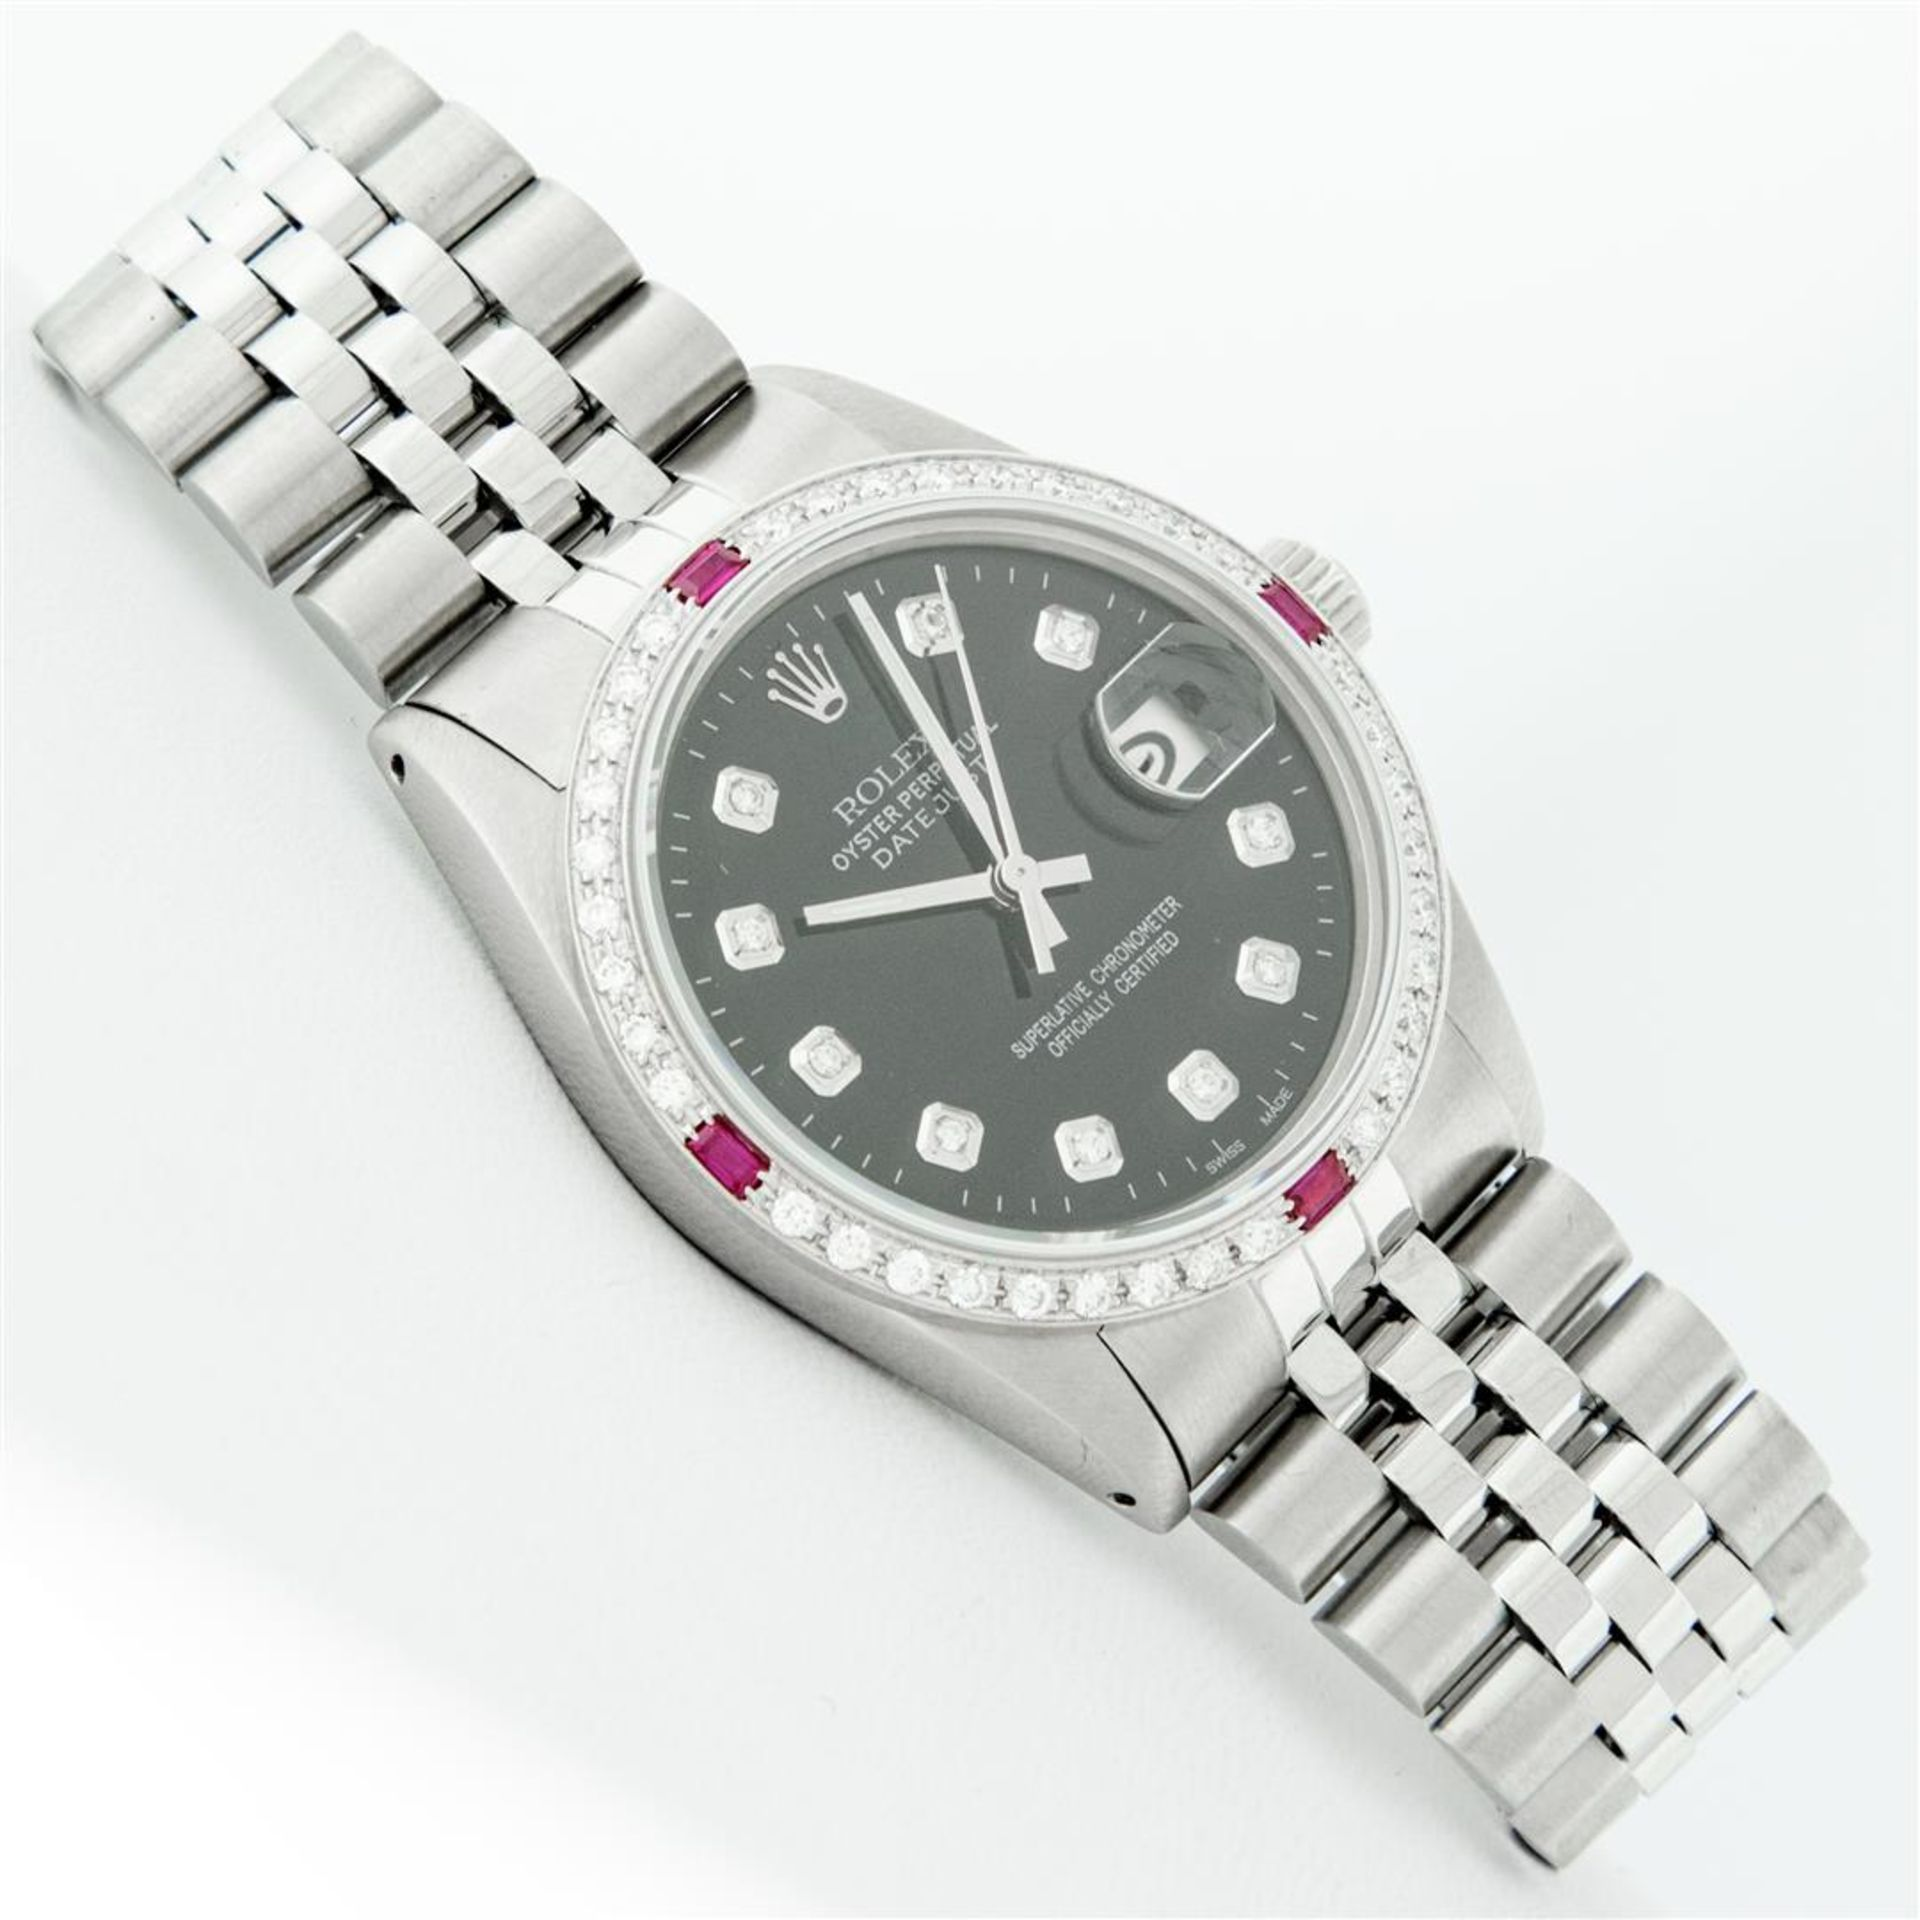 Rolex Mens Stainless Steel Black Diamond & Ruby 36MM Datejust Wristwatch Oyster - Image 3 of 9